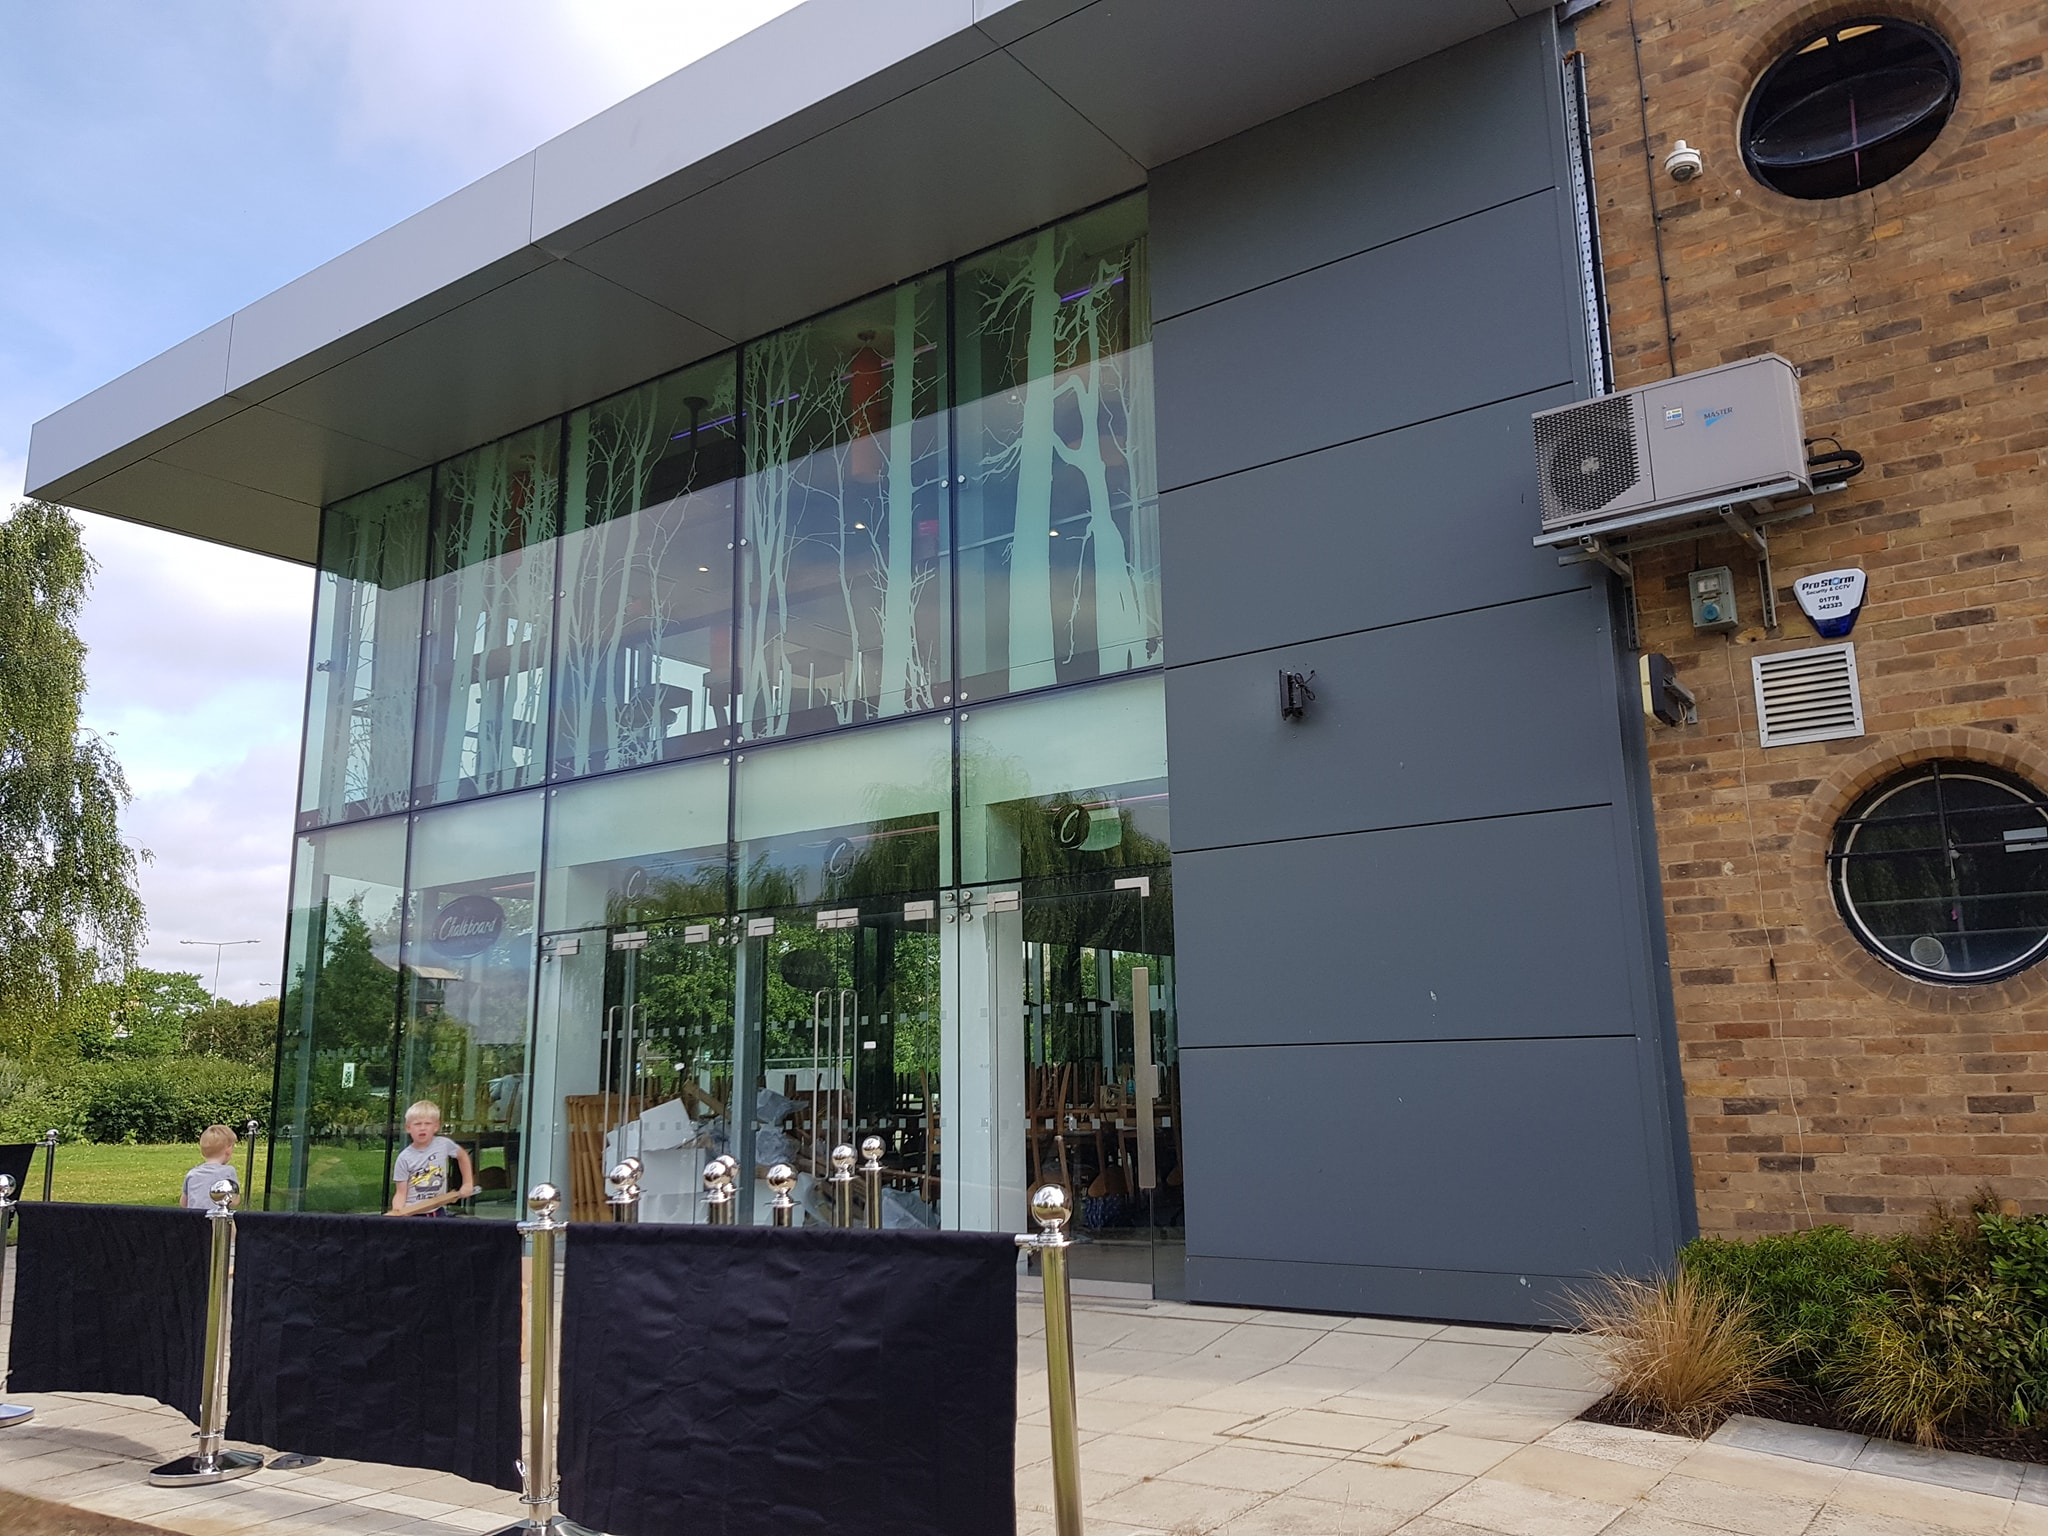 Commercial security alarm installation at the Key Theatre